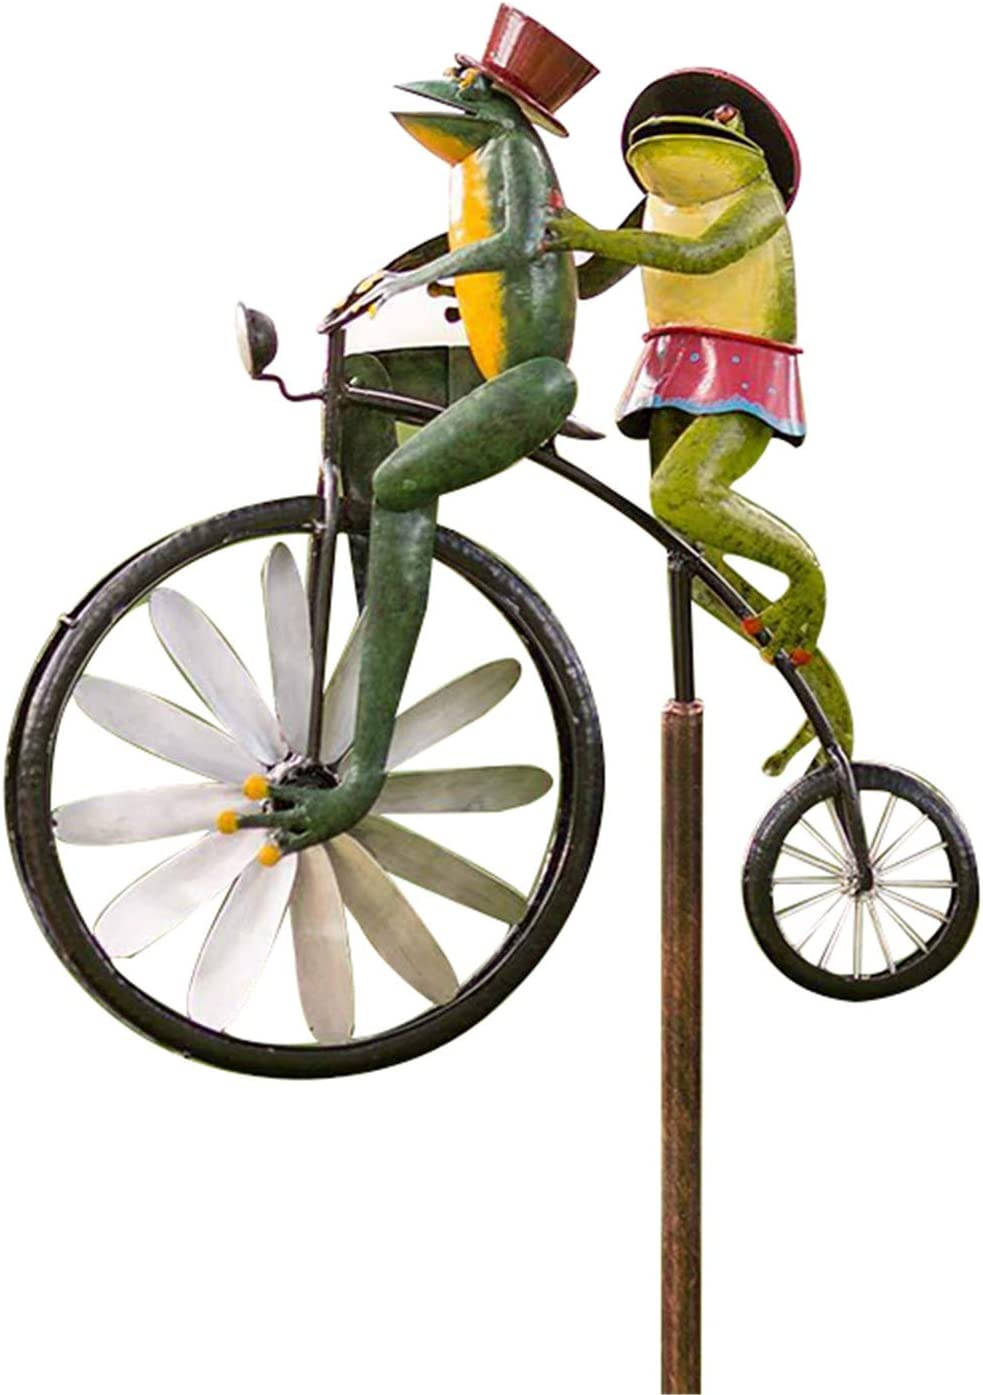 ALEXTREME Wind Spinners Outdoor Metal with Standing Vintage Bicycle, Frog Ornament Wind Spinner Pole Garden Yard Art Lawn Windmill Decoration Rabbit Mantis Cat Mouse Ornaments Decorations